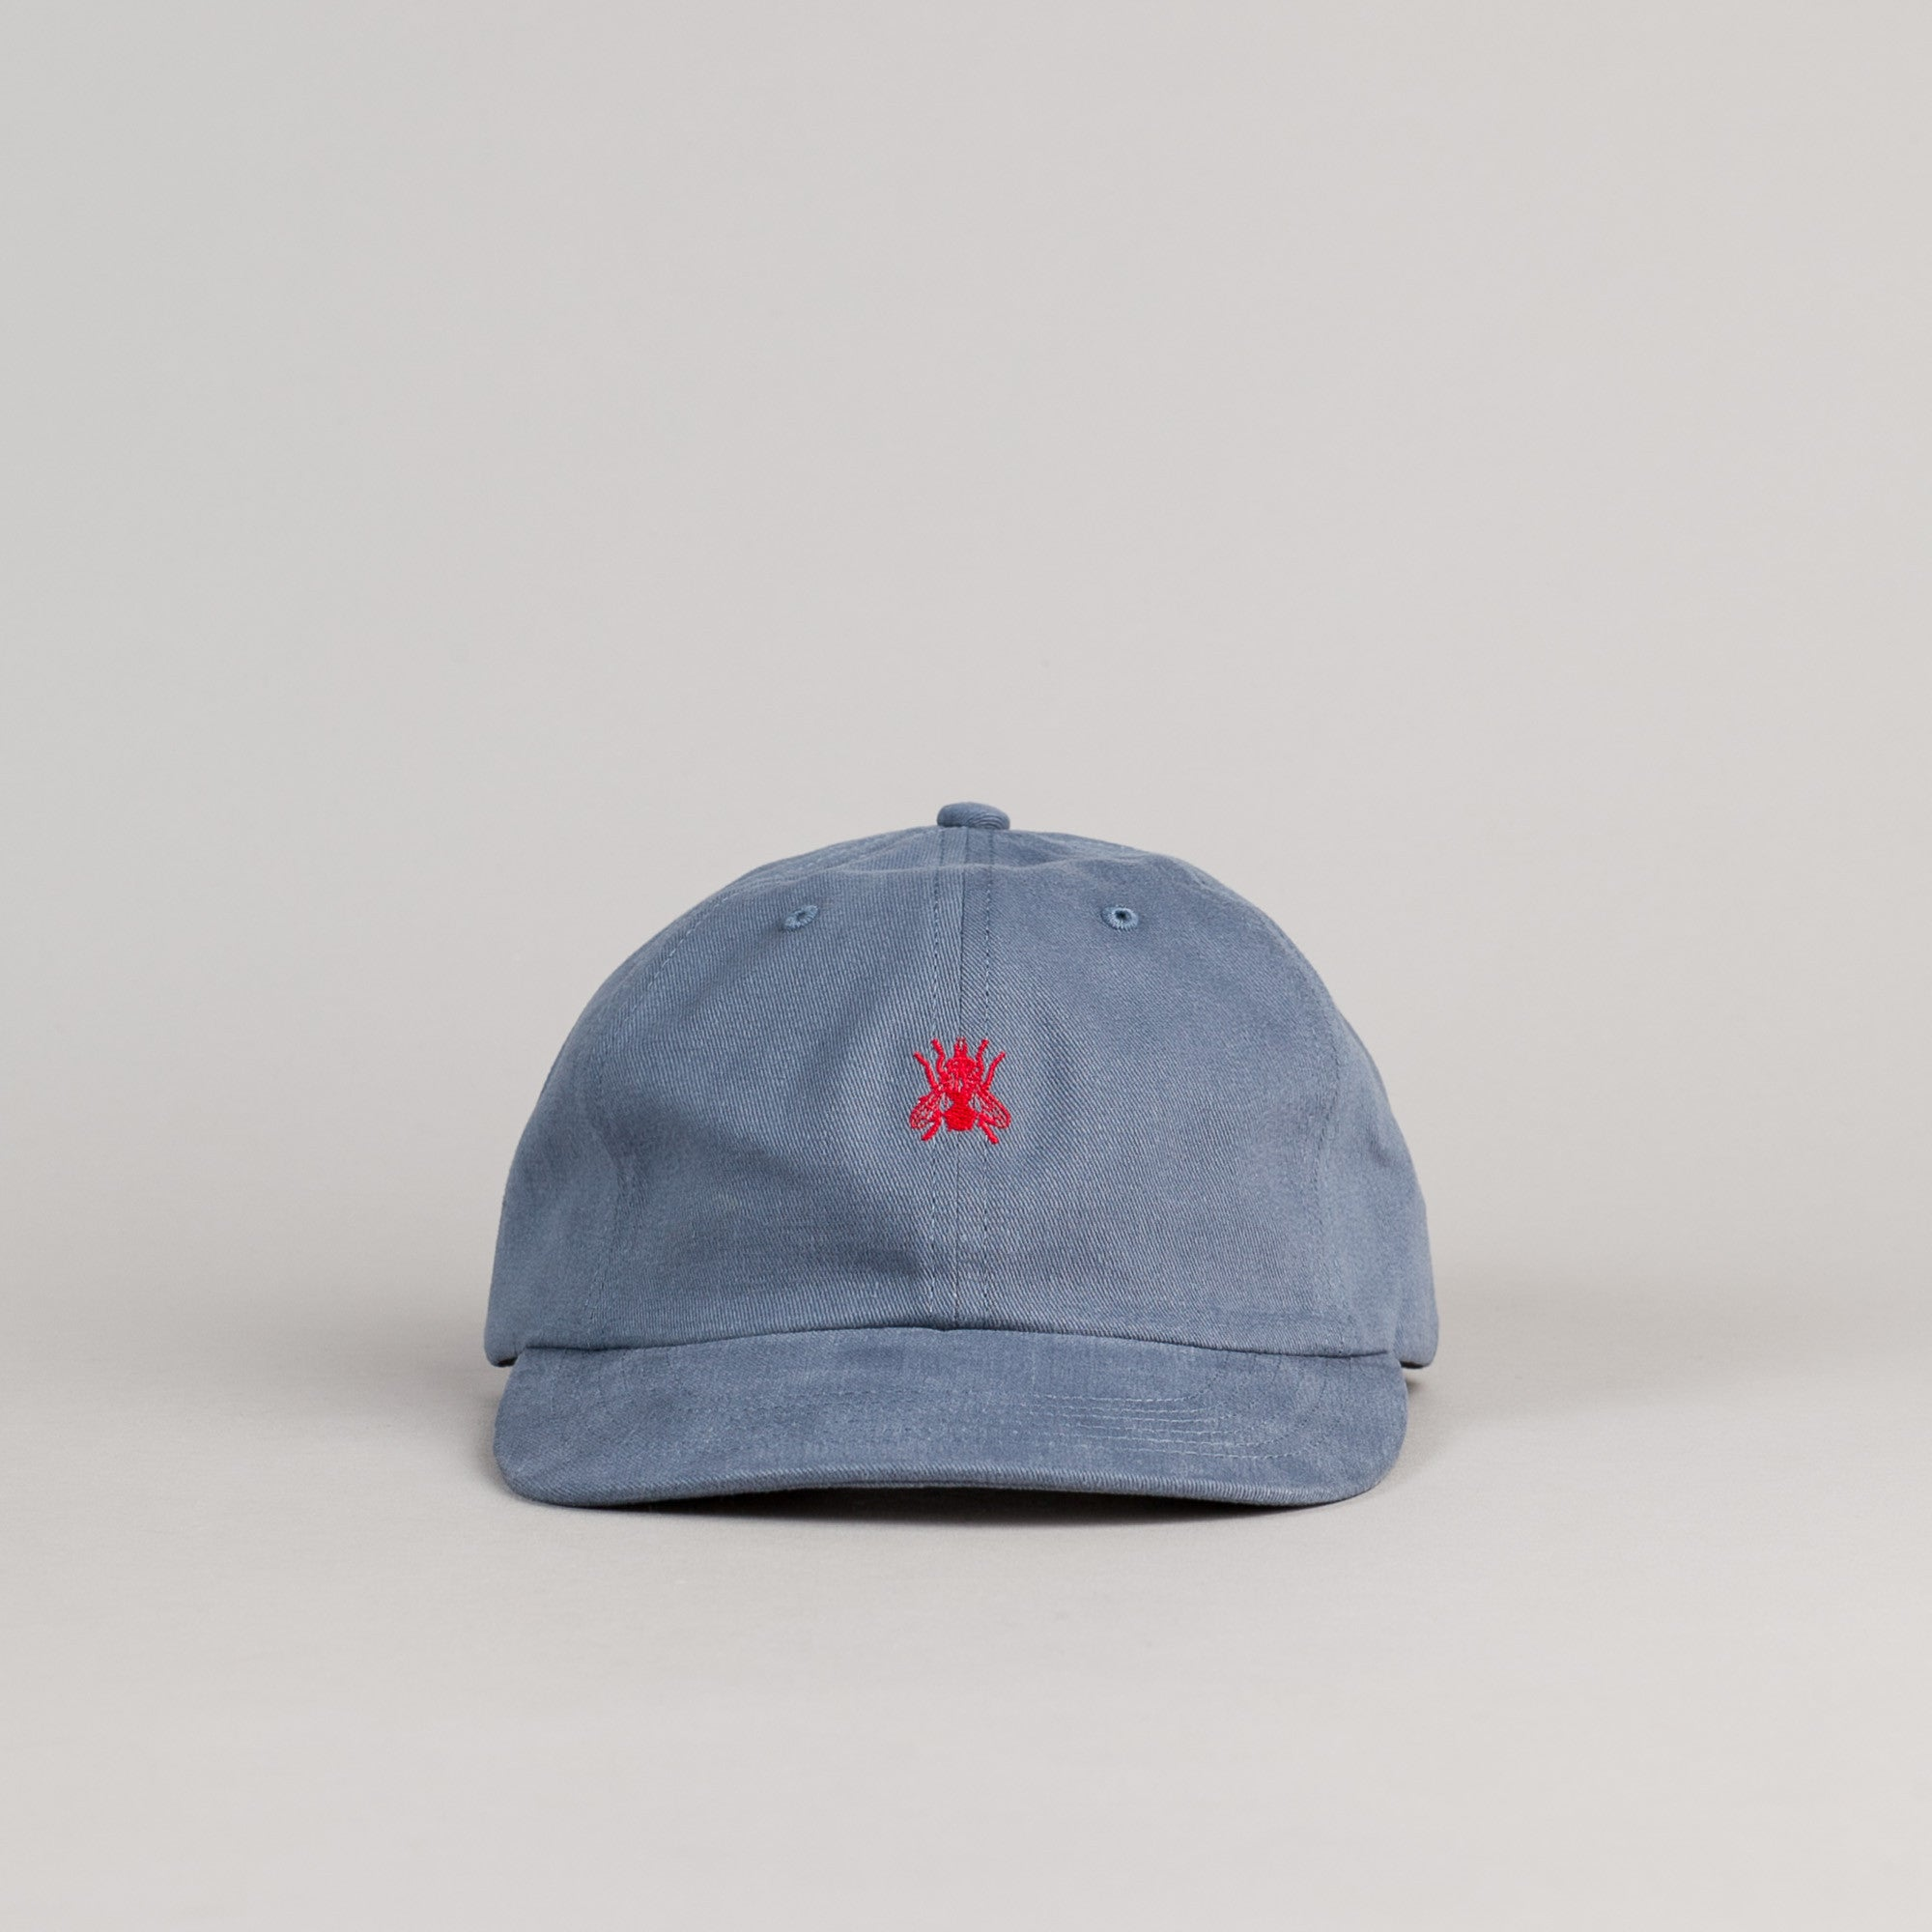 Butter Goods Fly 6 Panel Cap - Blue